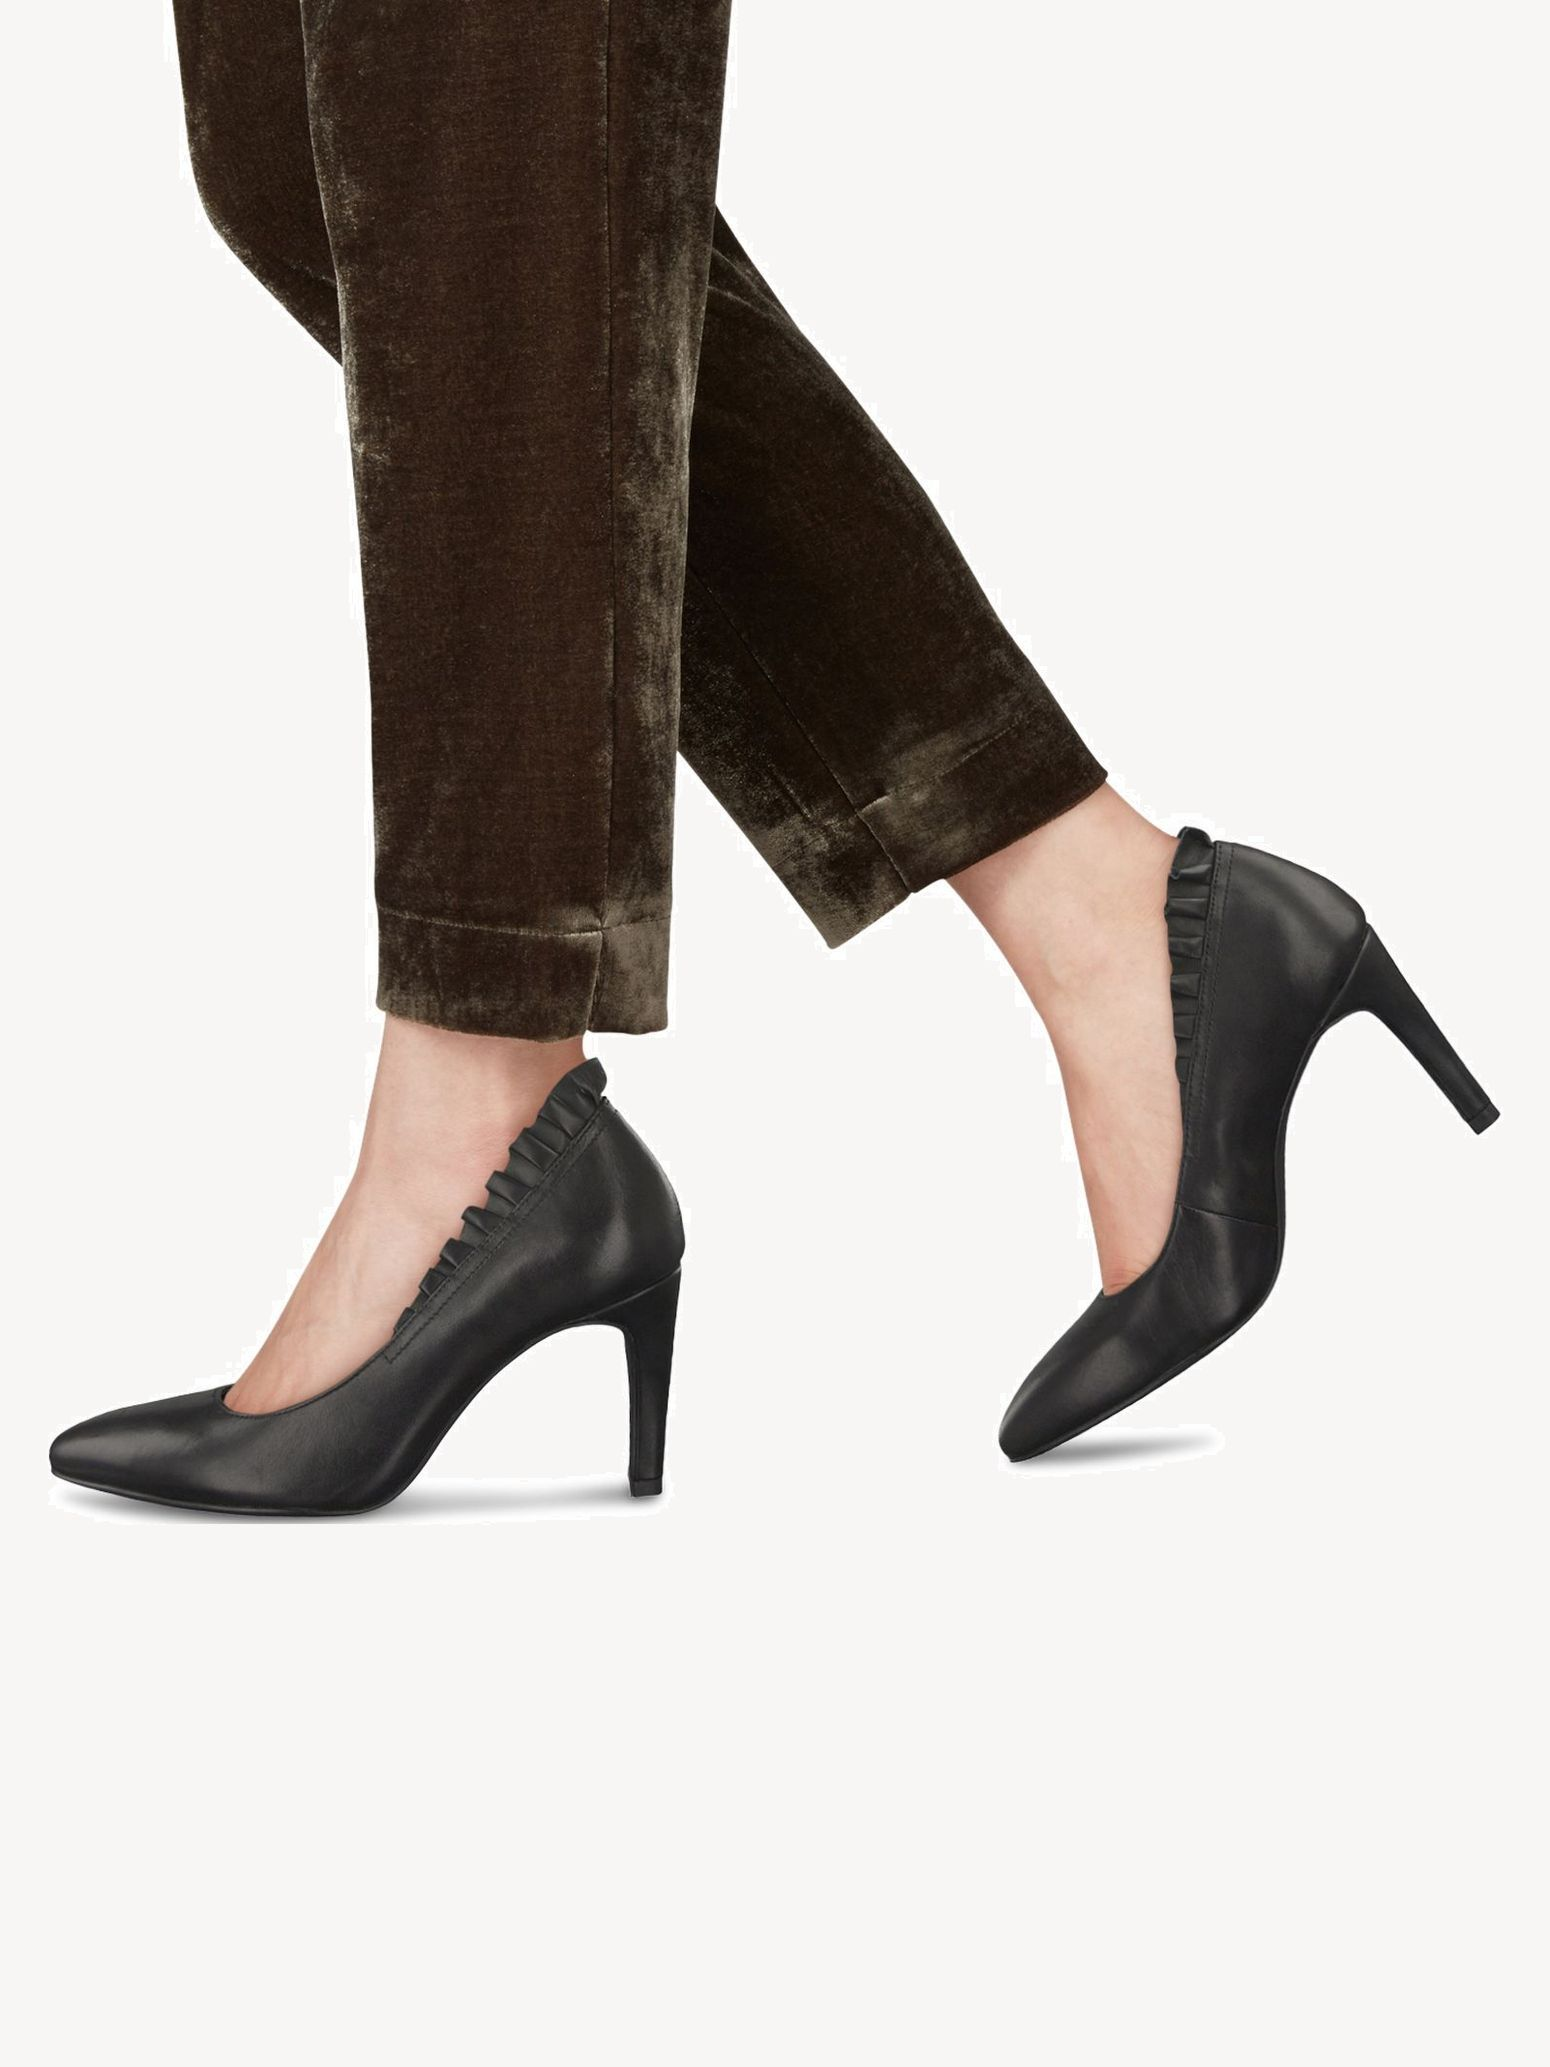 Pumps 1 1 22493 21: Tamaris Pumps online kaufen!